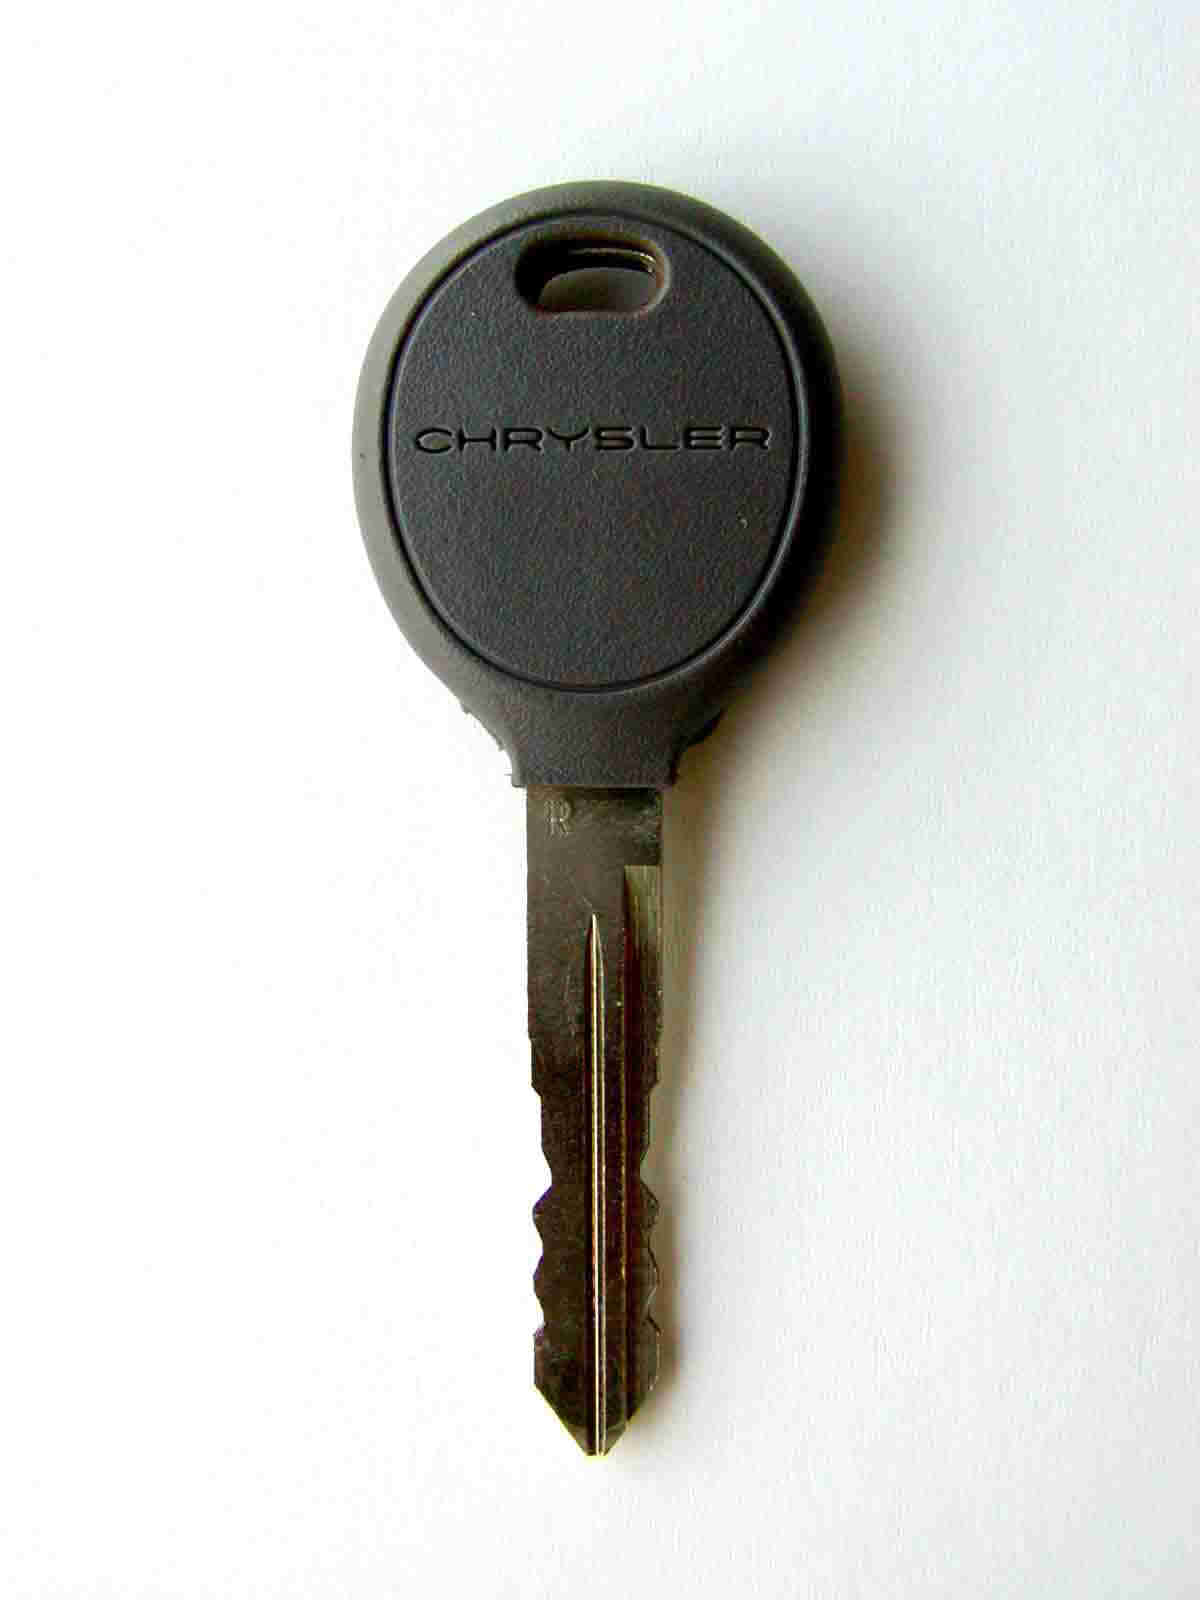 Chrysler Key